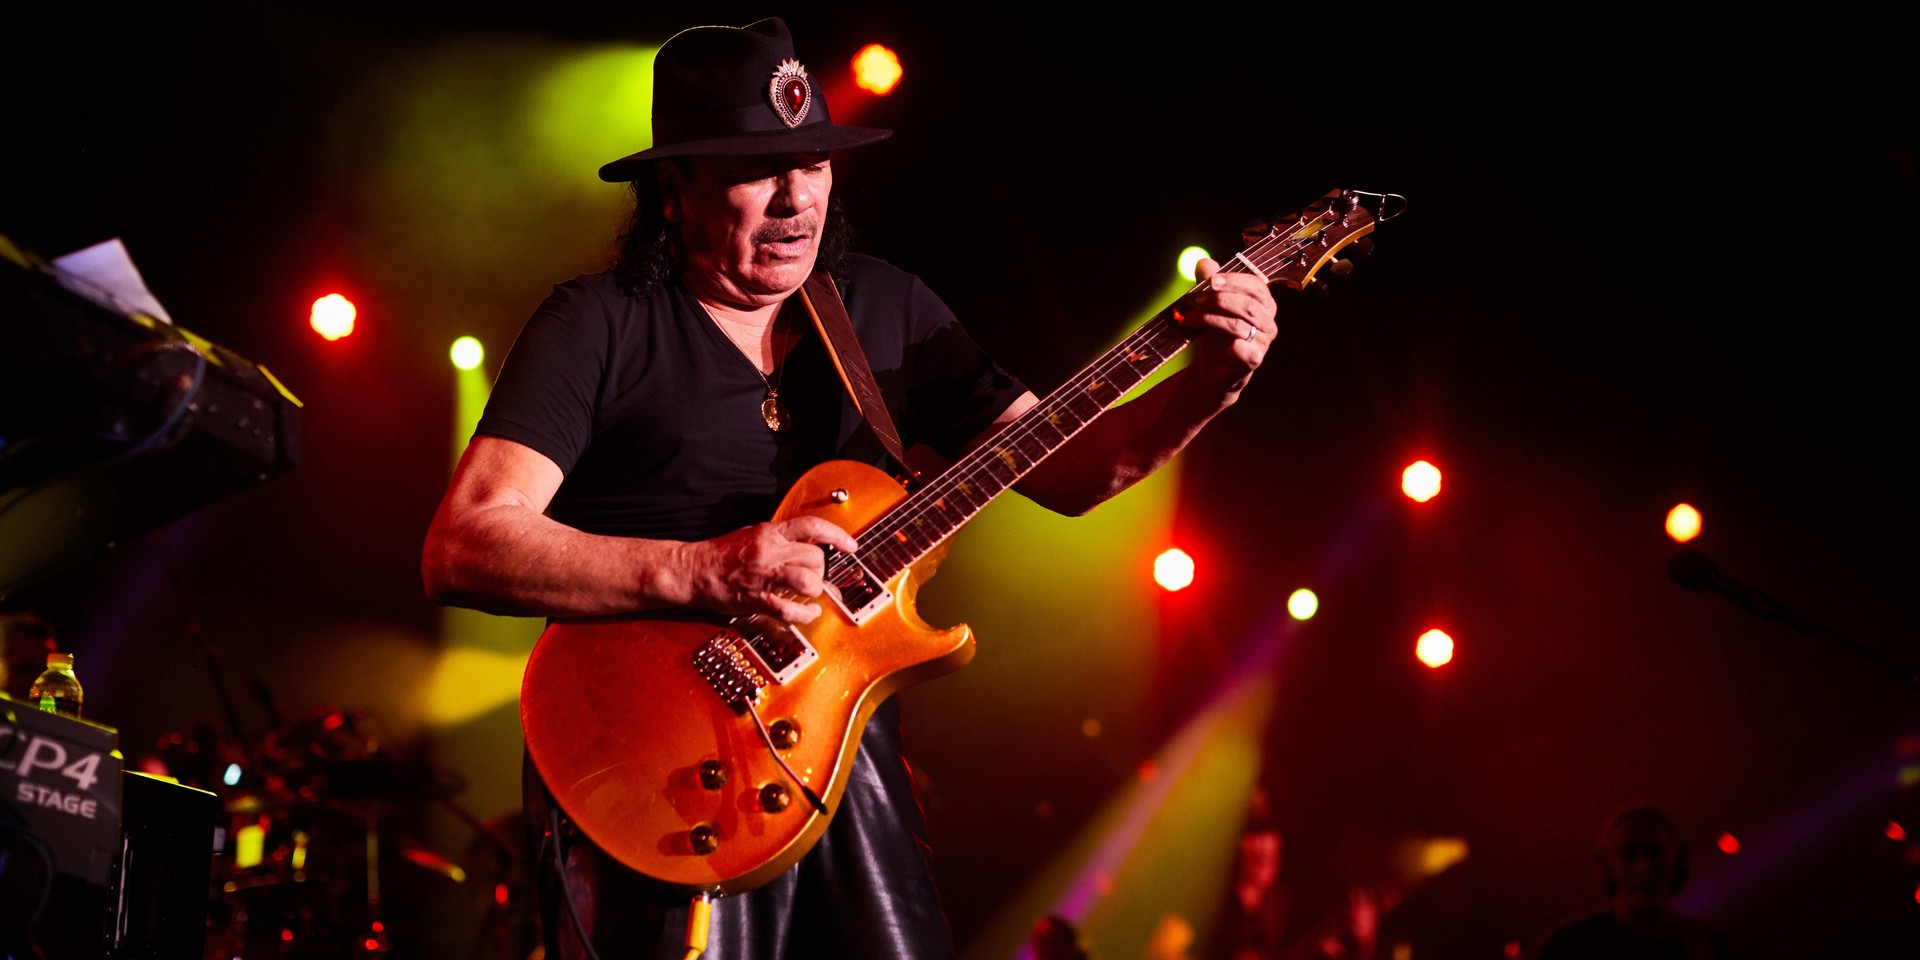 PHOTO GALLERY: Santana delivers a masterful performance in his Singapore return